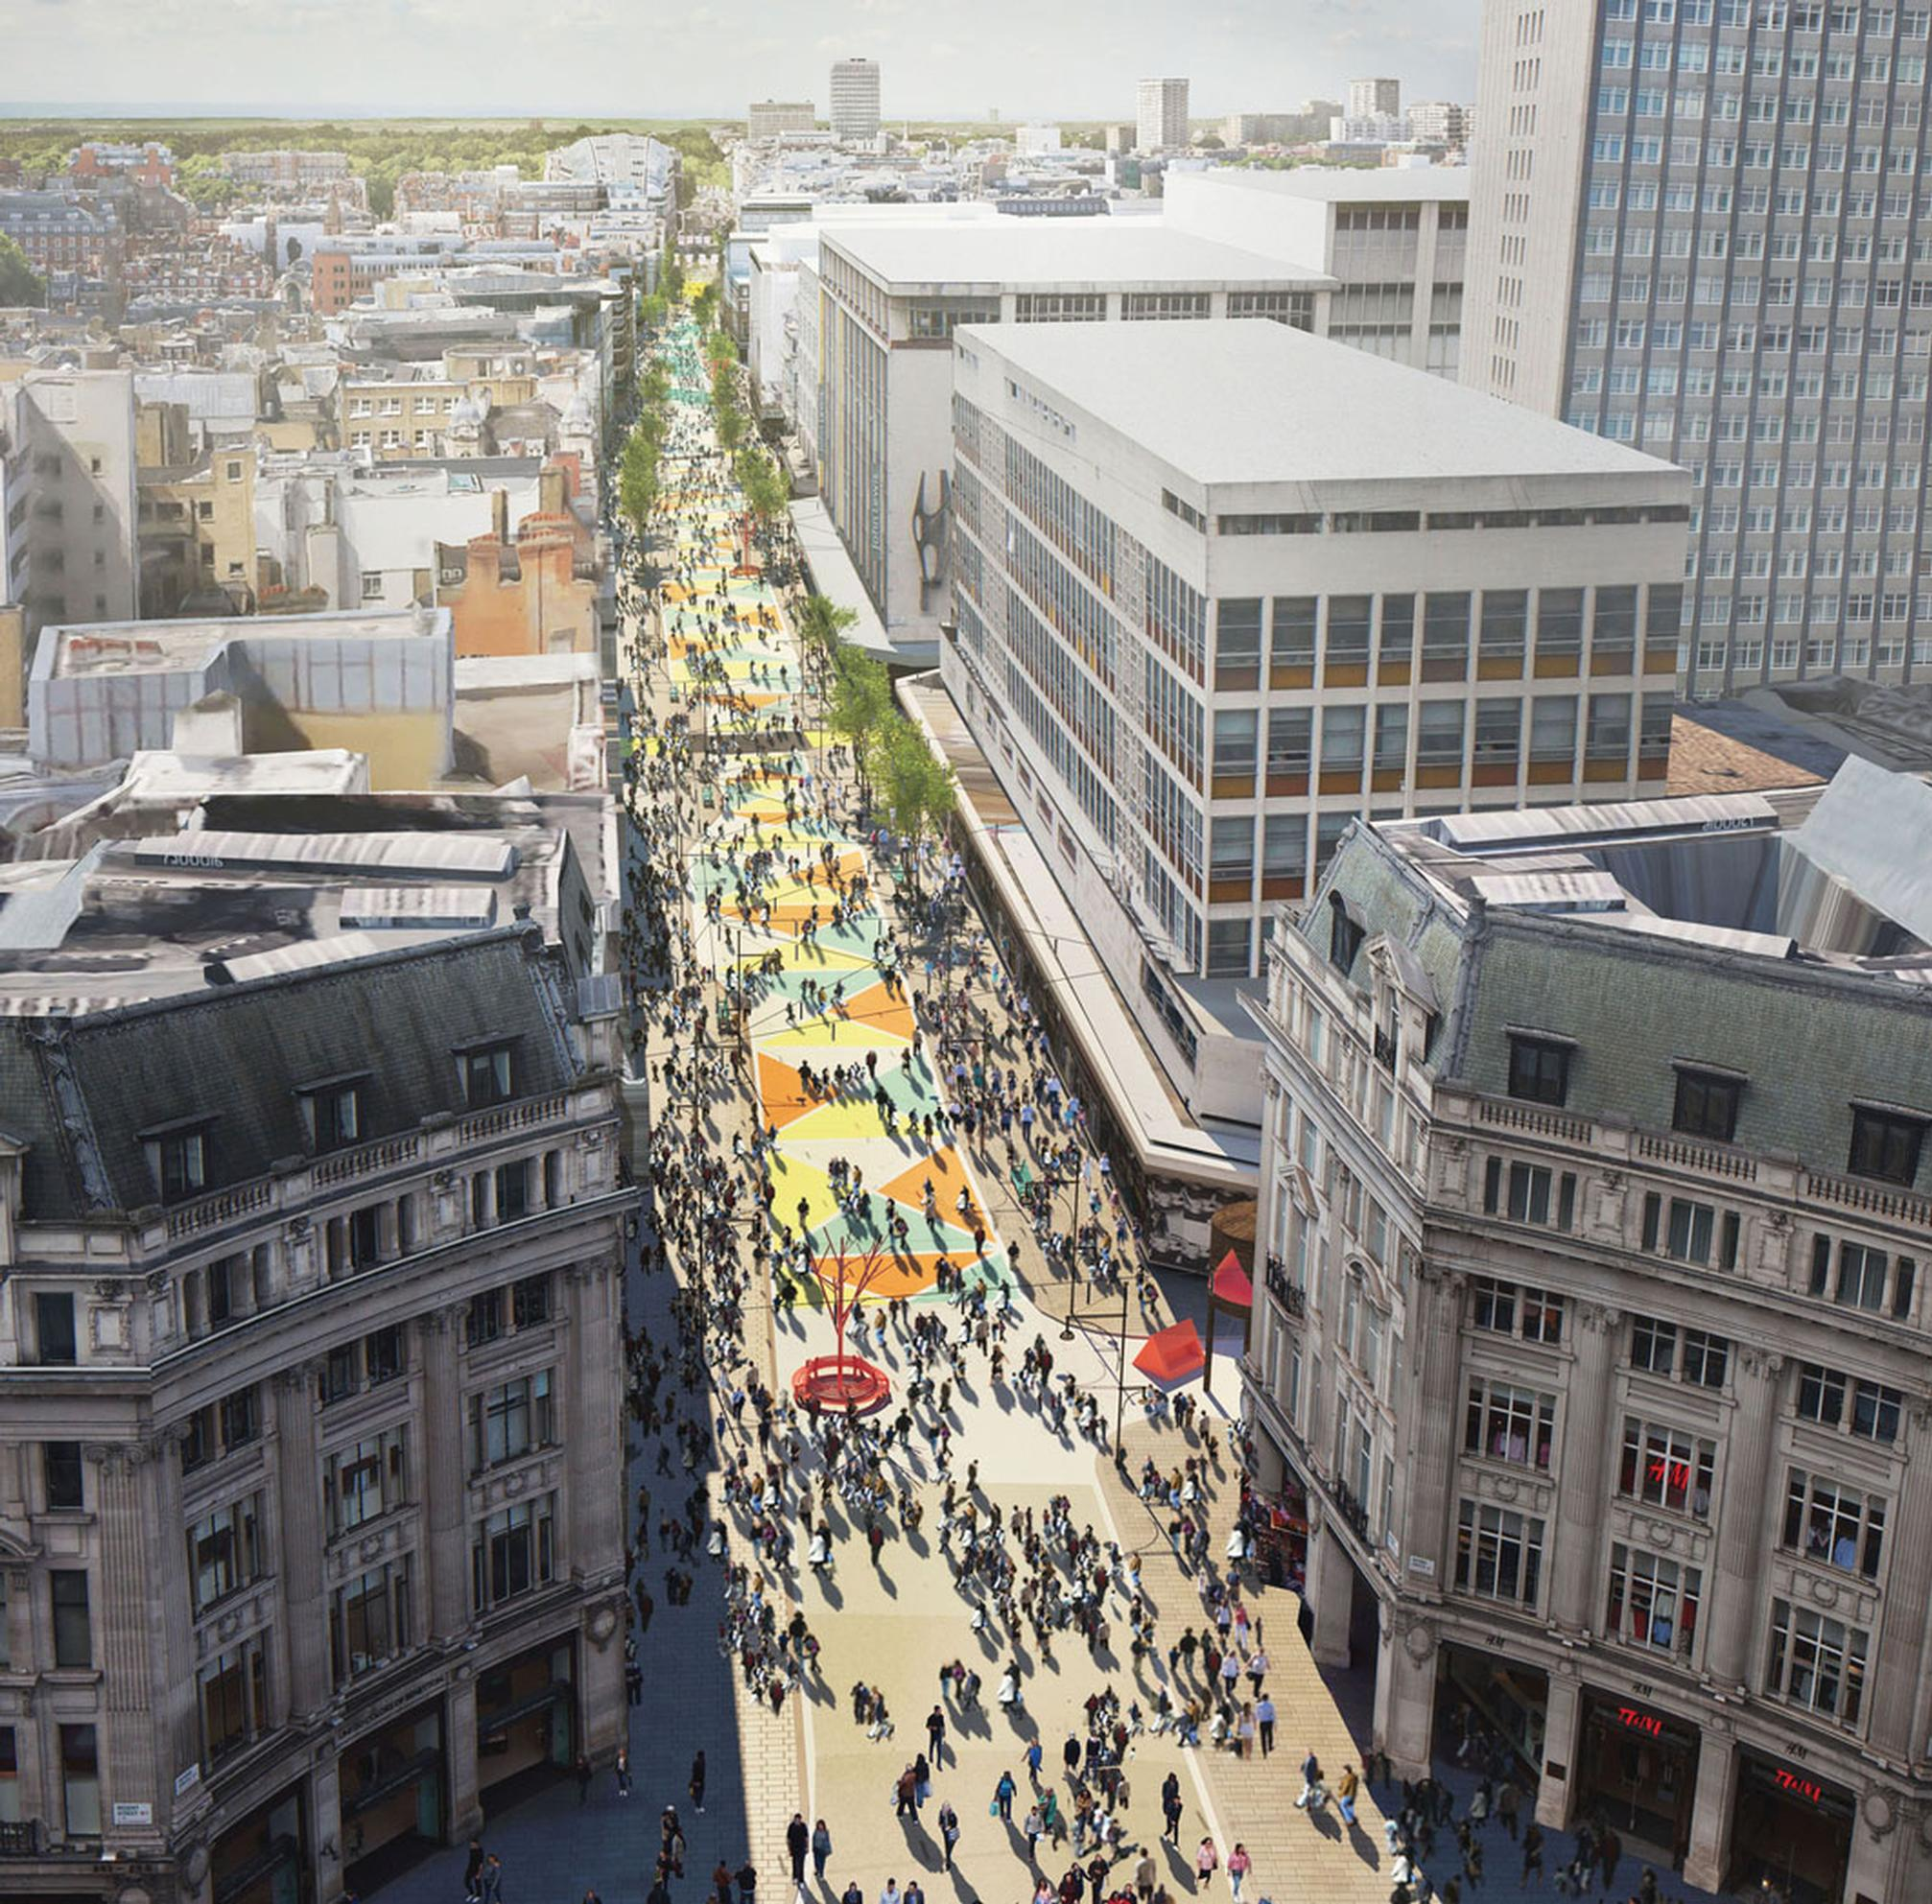 How Oxford Street West could look